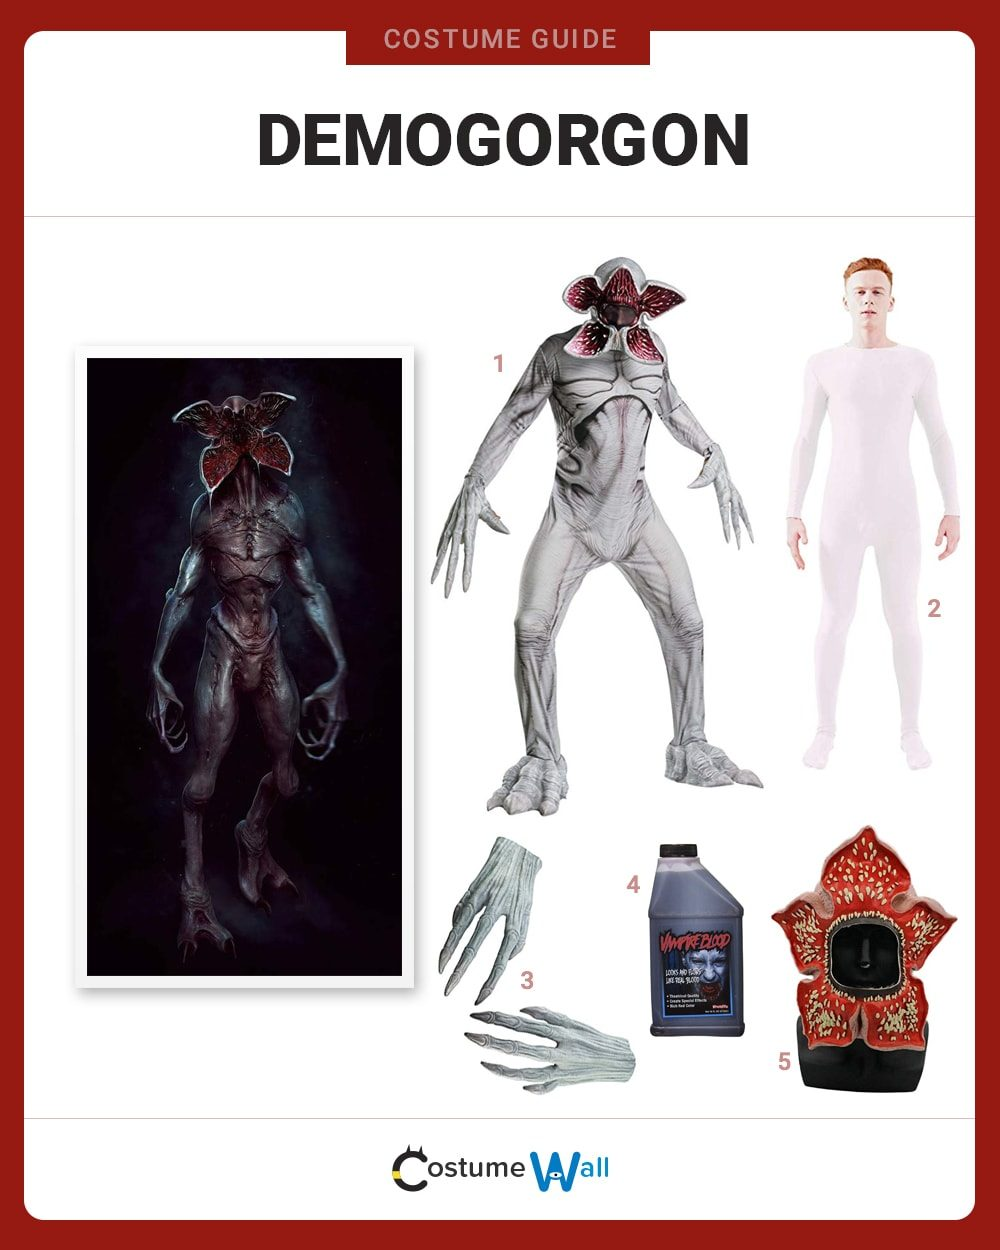 Demogorgon Costume Guide